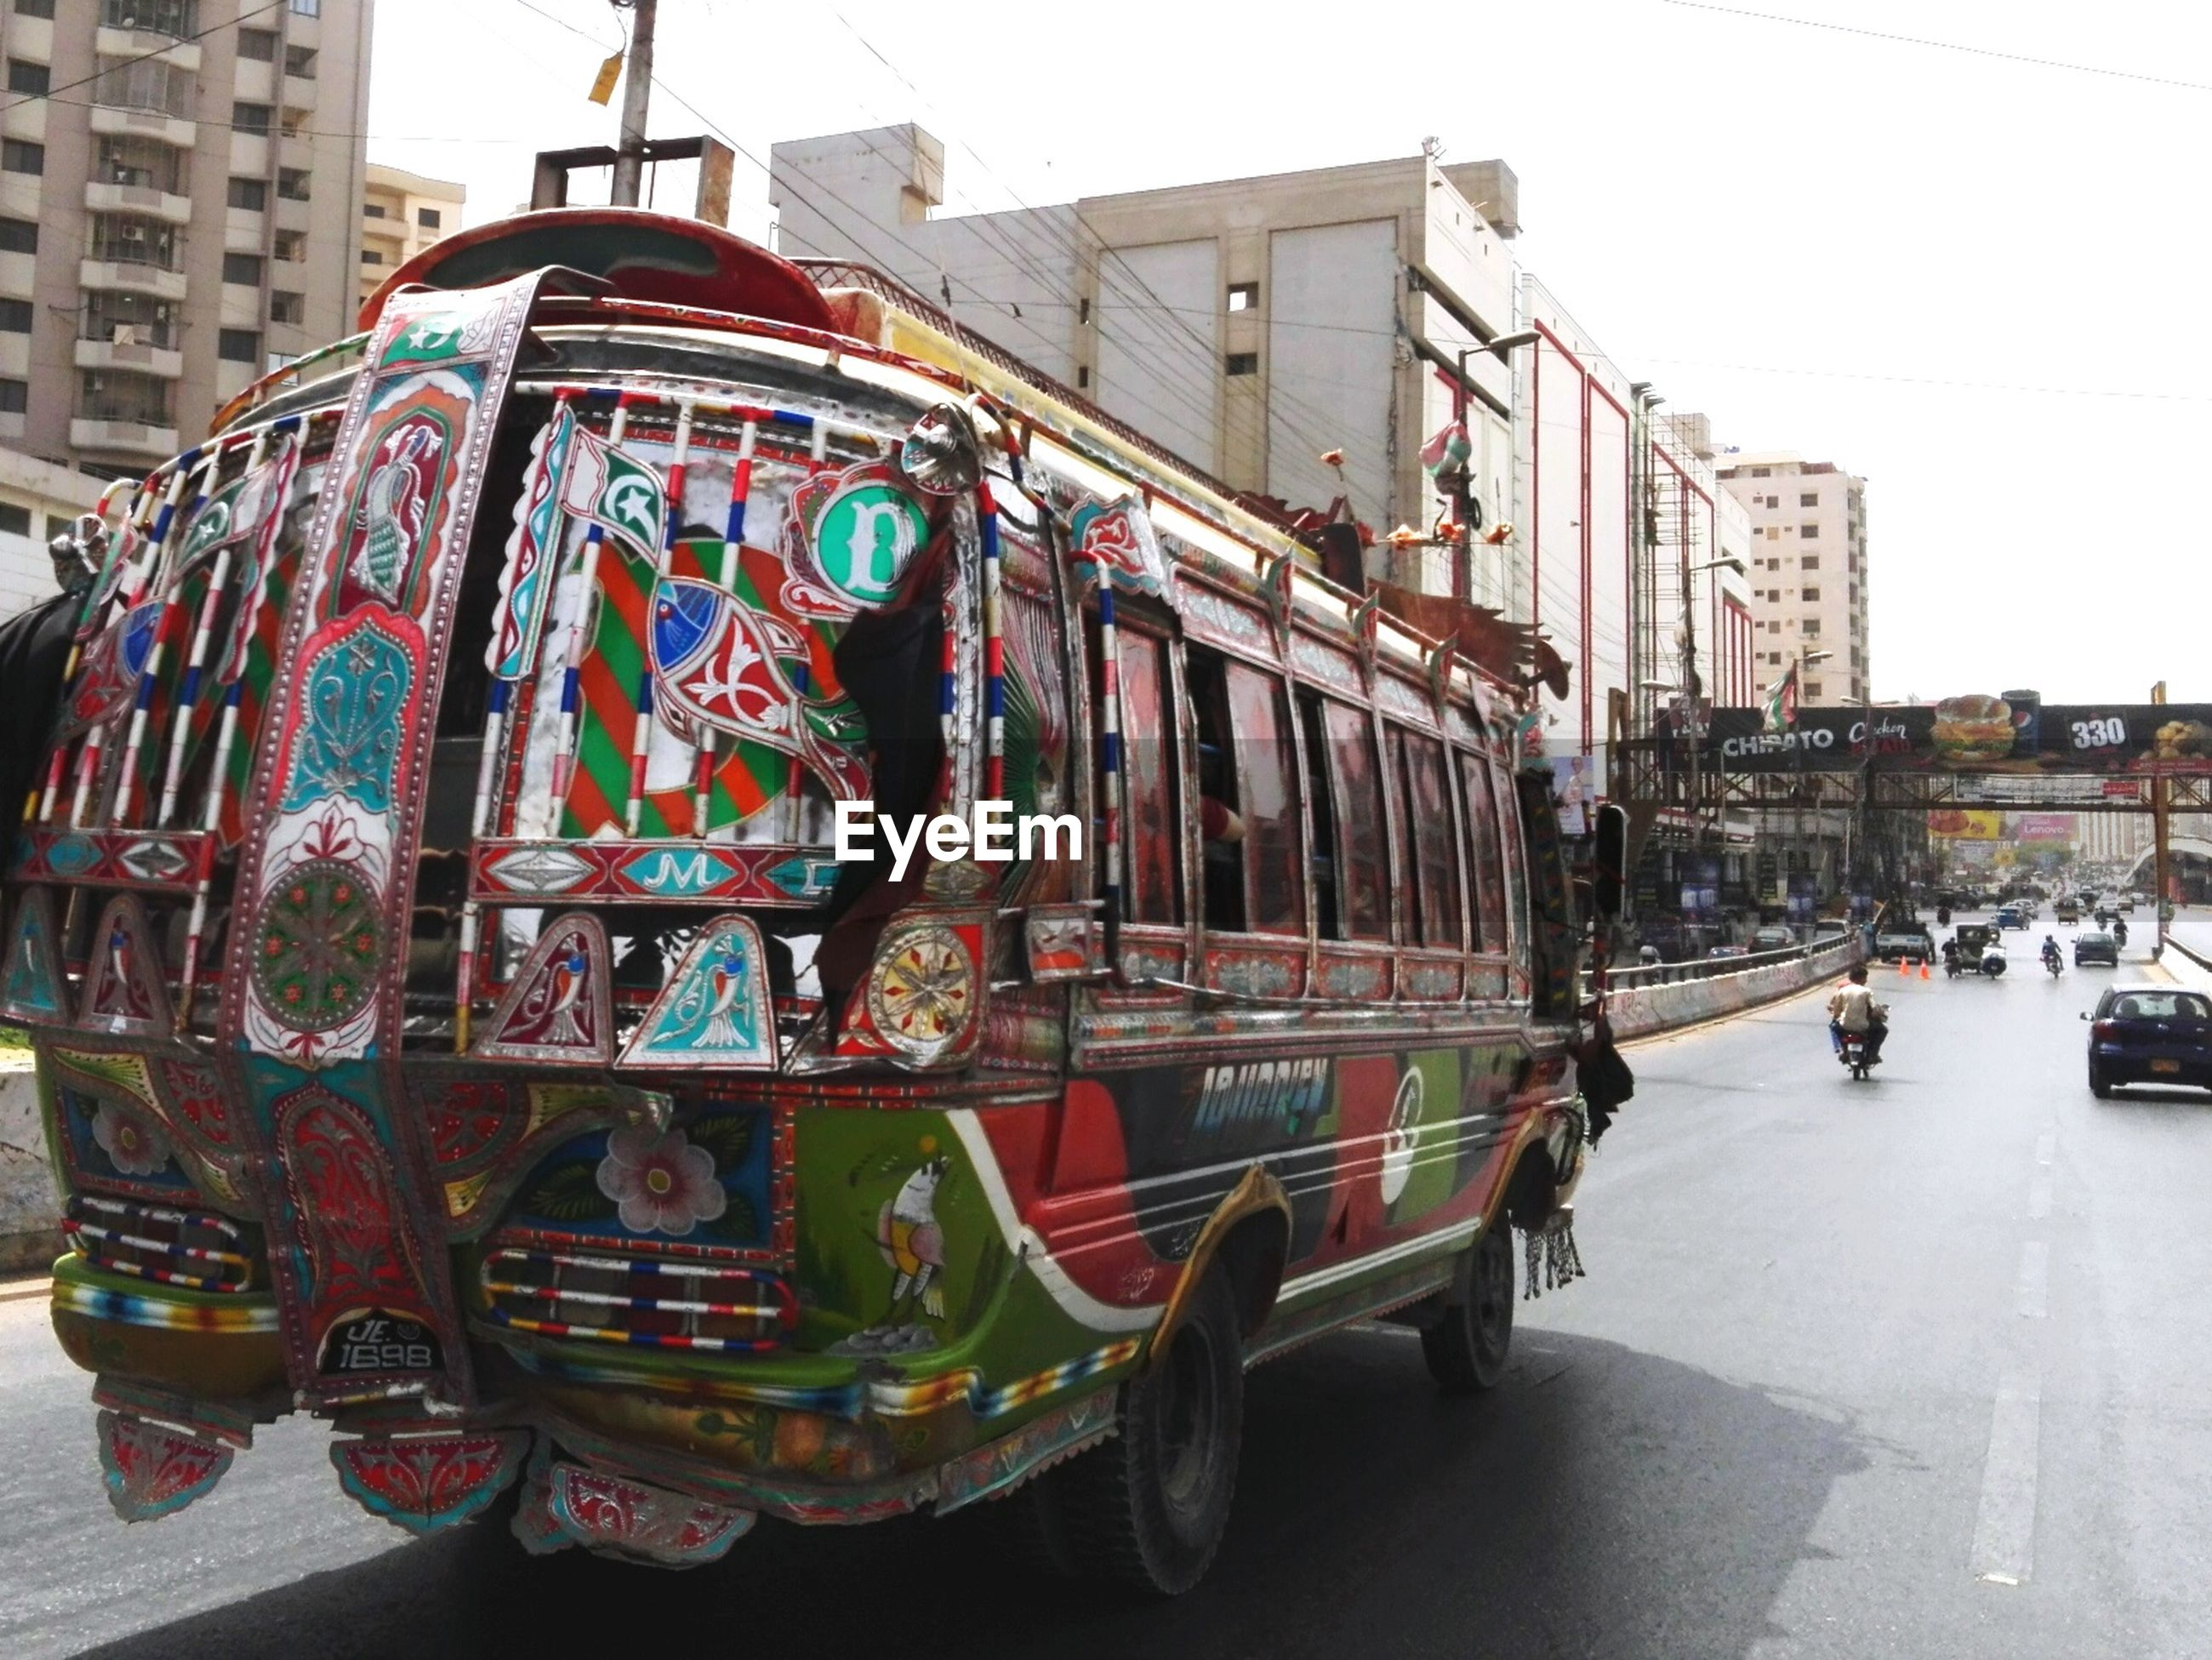 Colorful bus on street